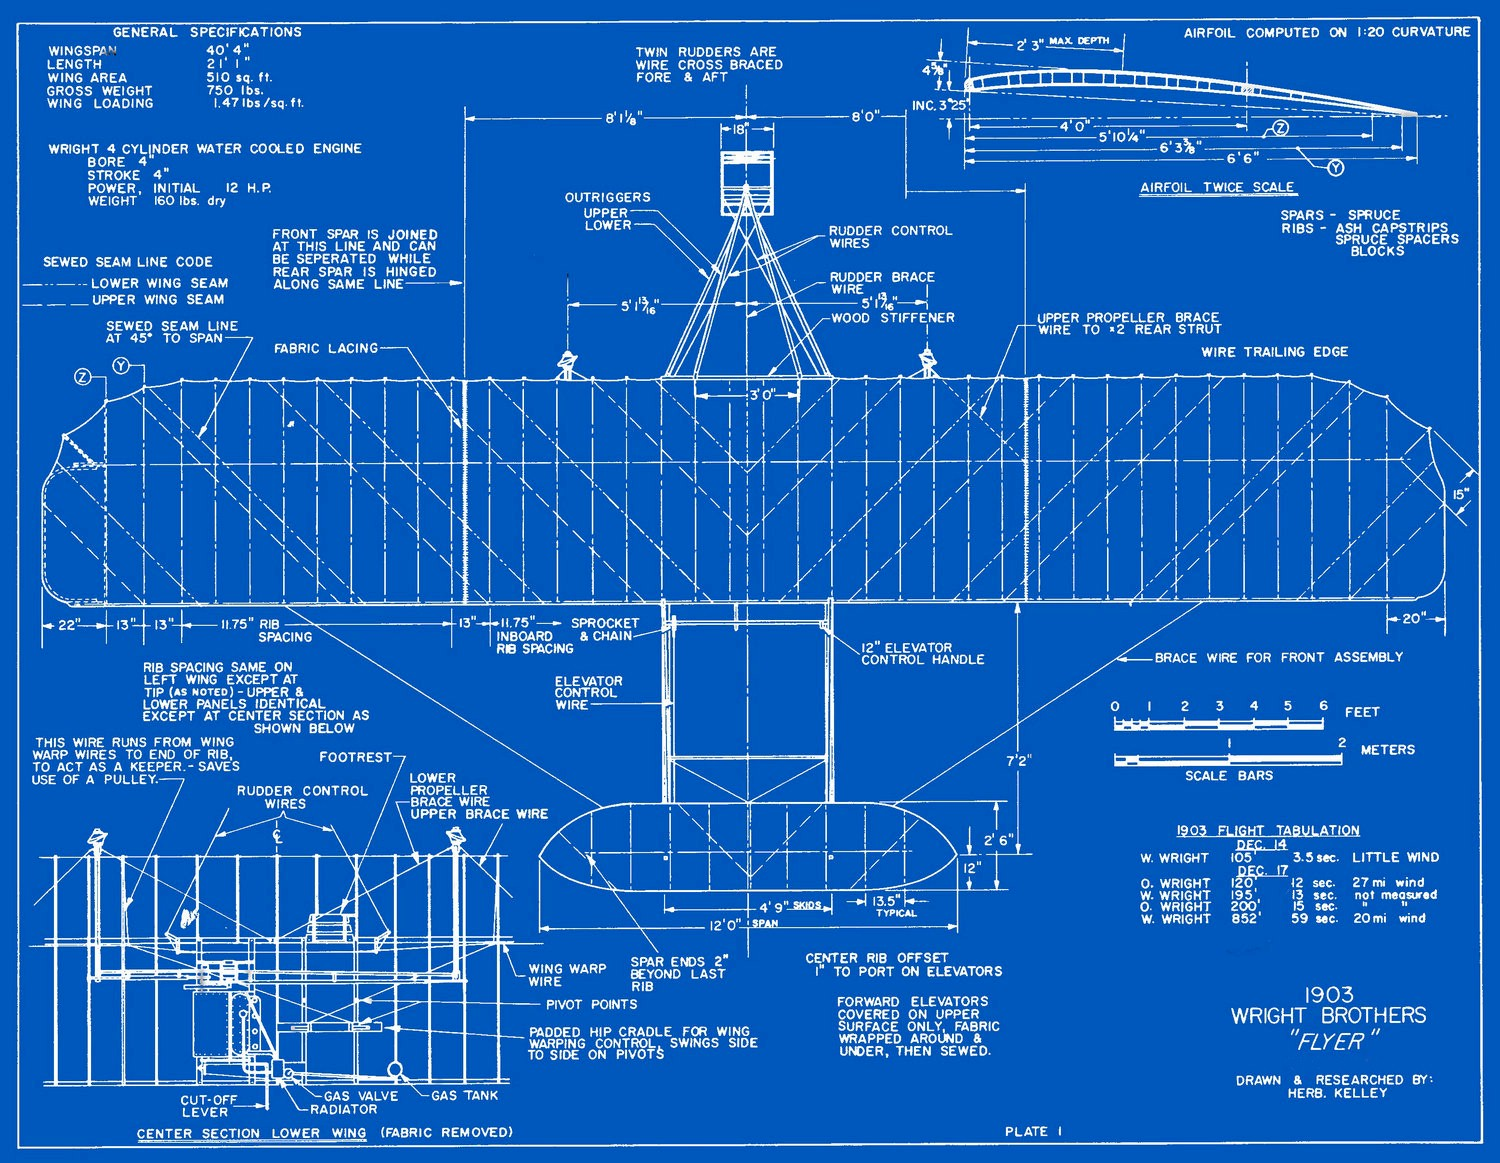 1903 wright flyer blueprints sci fi science fiction retro vintage 1903 wright flyer blueprints sci fi science fiction retro vintage kraft poster canvas painting wall sticker home decor gift in wall stickers from home malvernweather Images